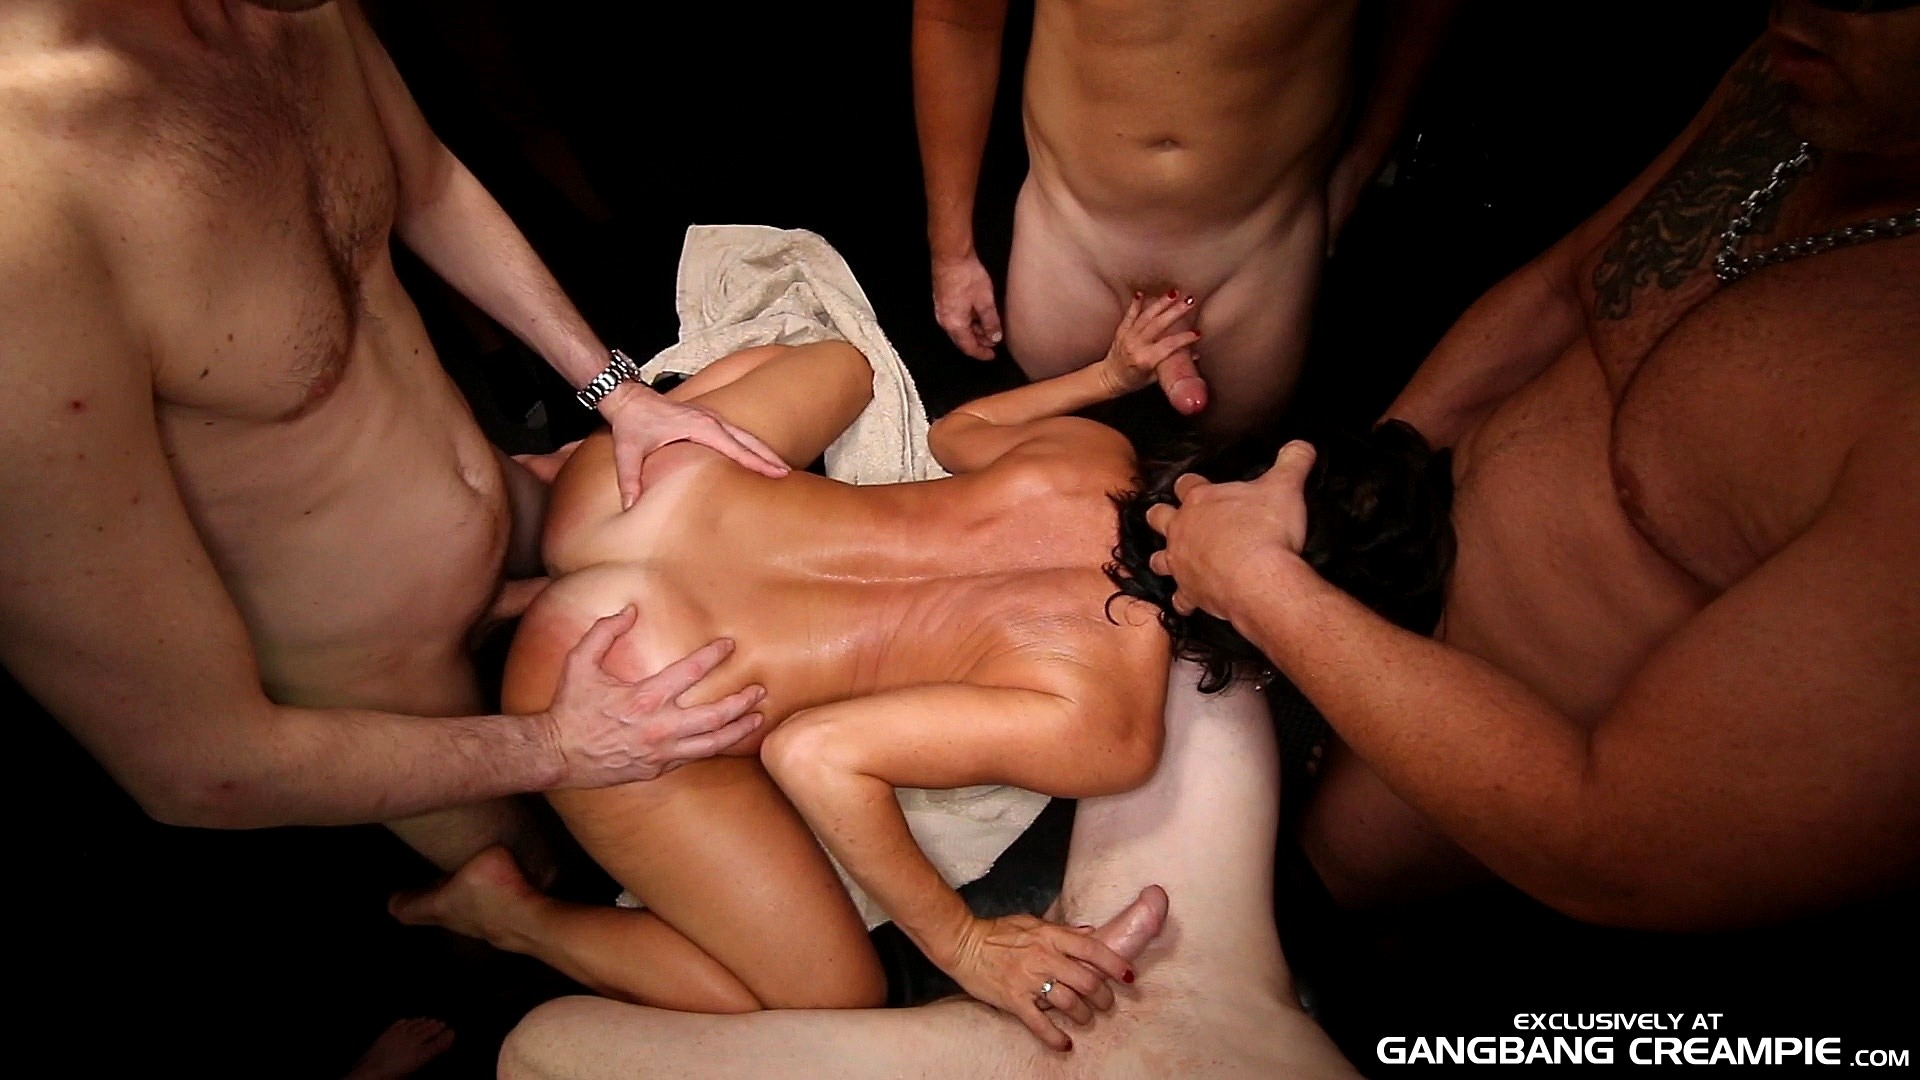 Hot guys gangbang creampie, teacher in stocking porn